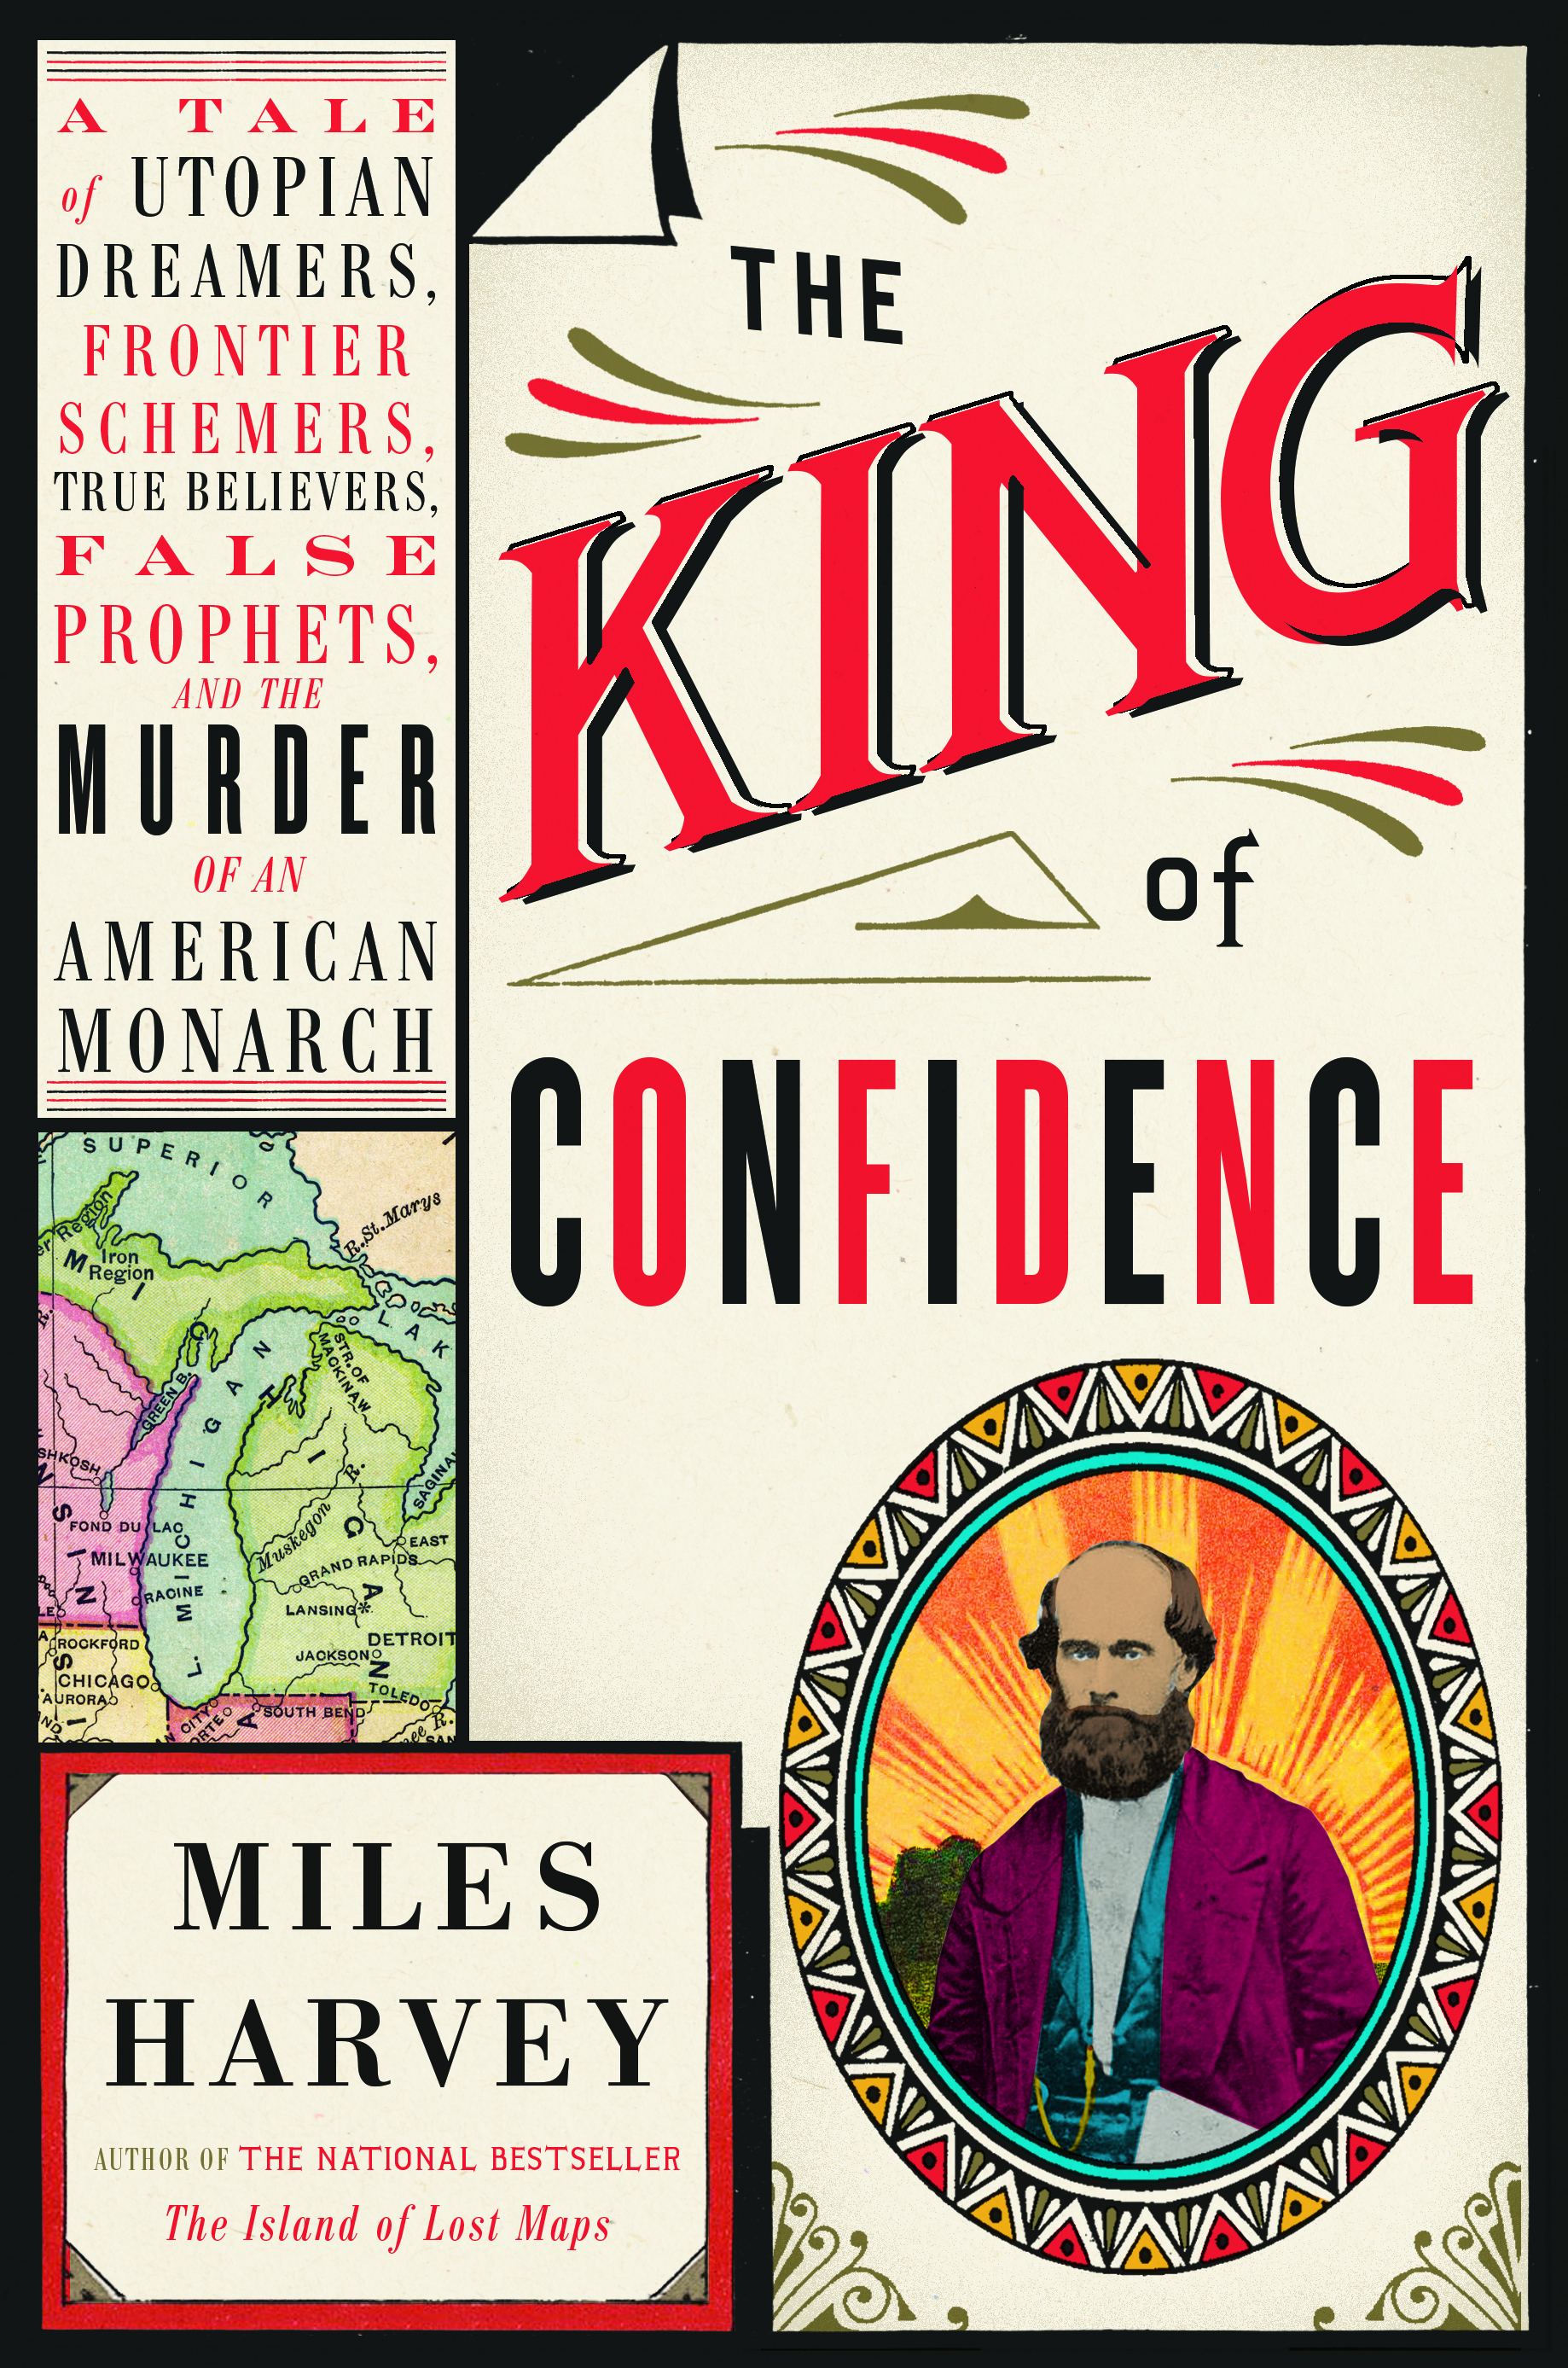 "The King of Confidence - Miles Harvey - <span class=""date-display-single"">10/15/2020 - 5:30pm</span>"